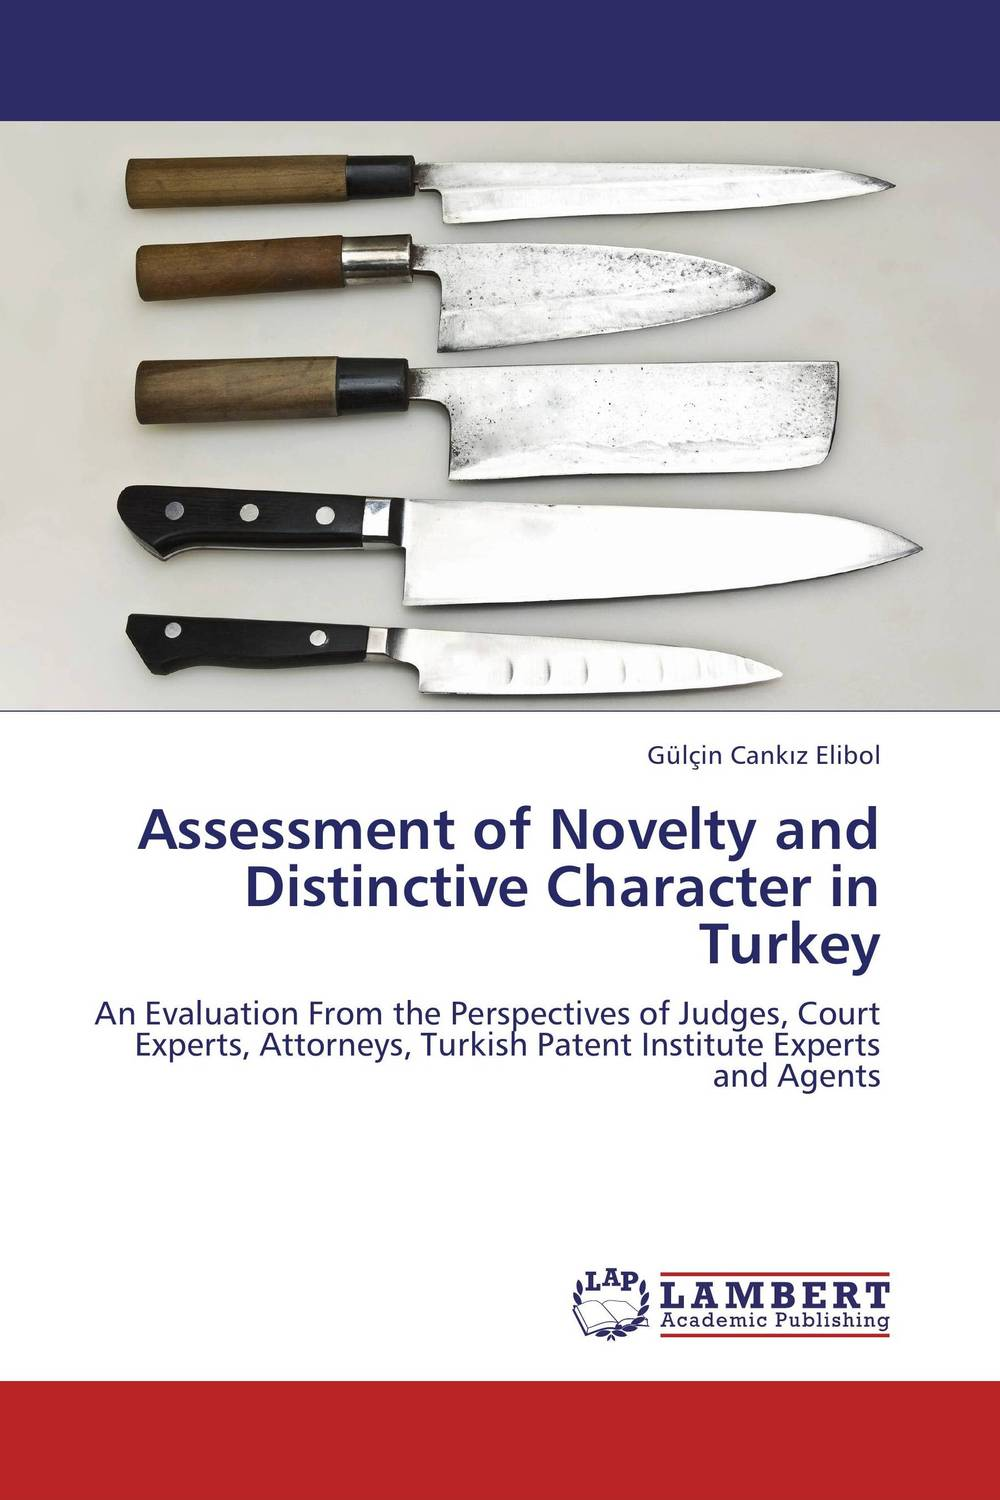 Assessment of Novelty and Distinctive Character in Turkey novelty гироскутер